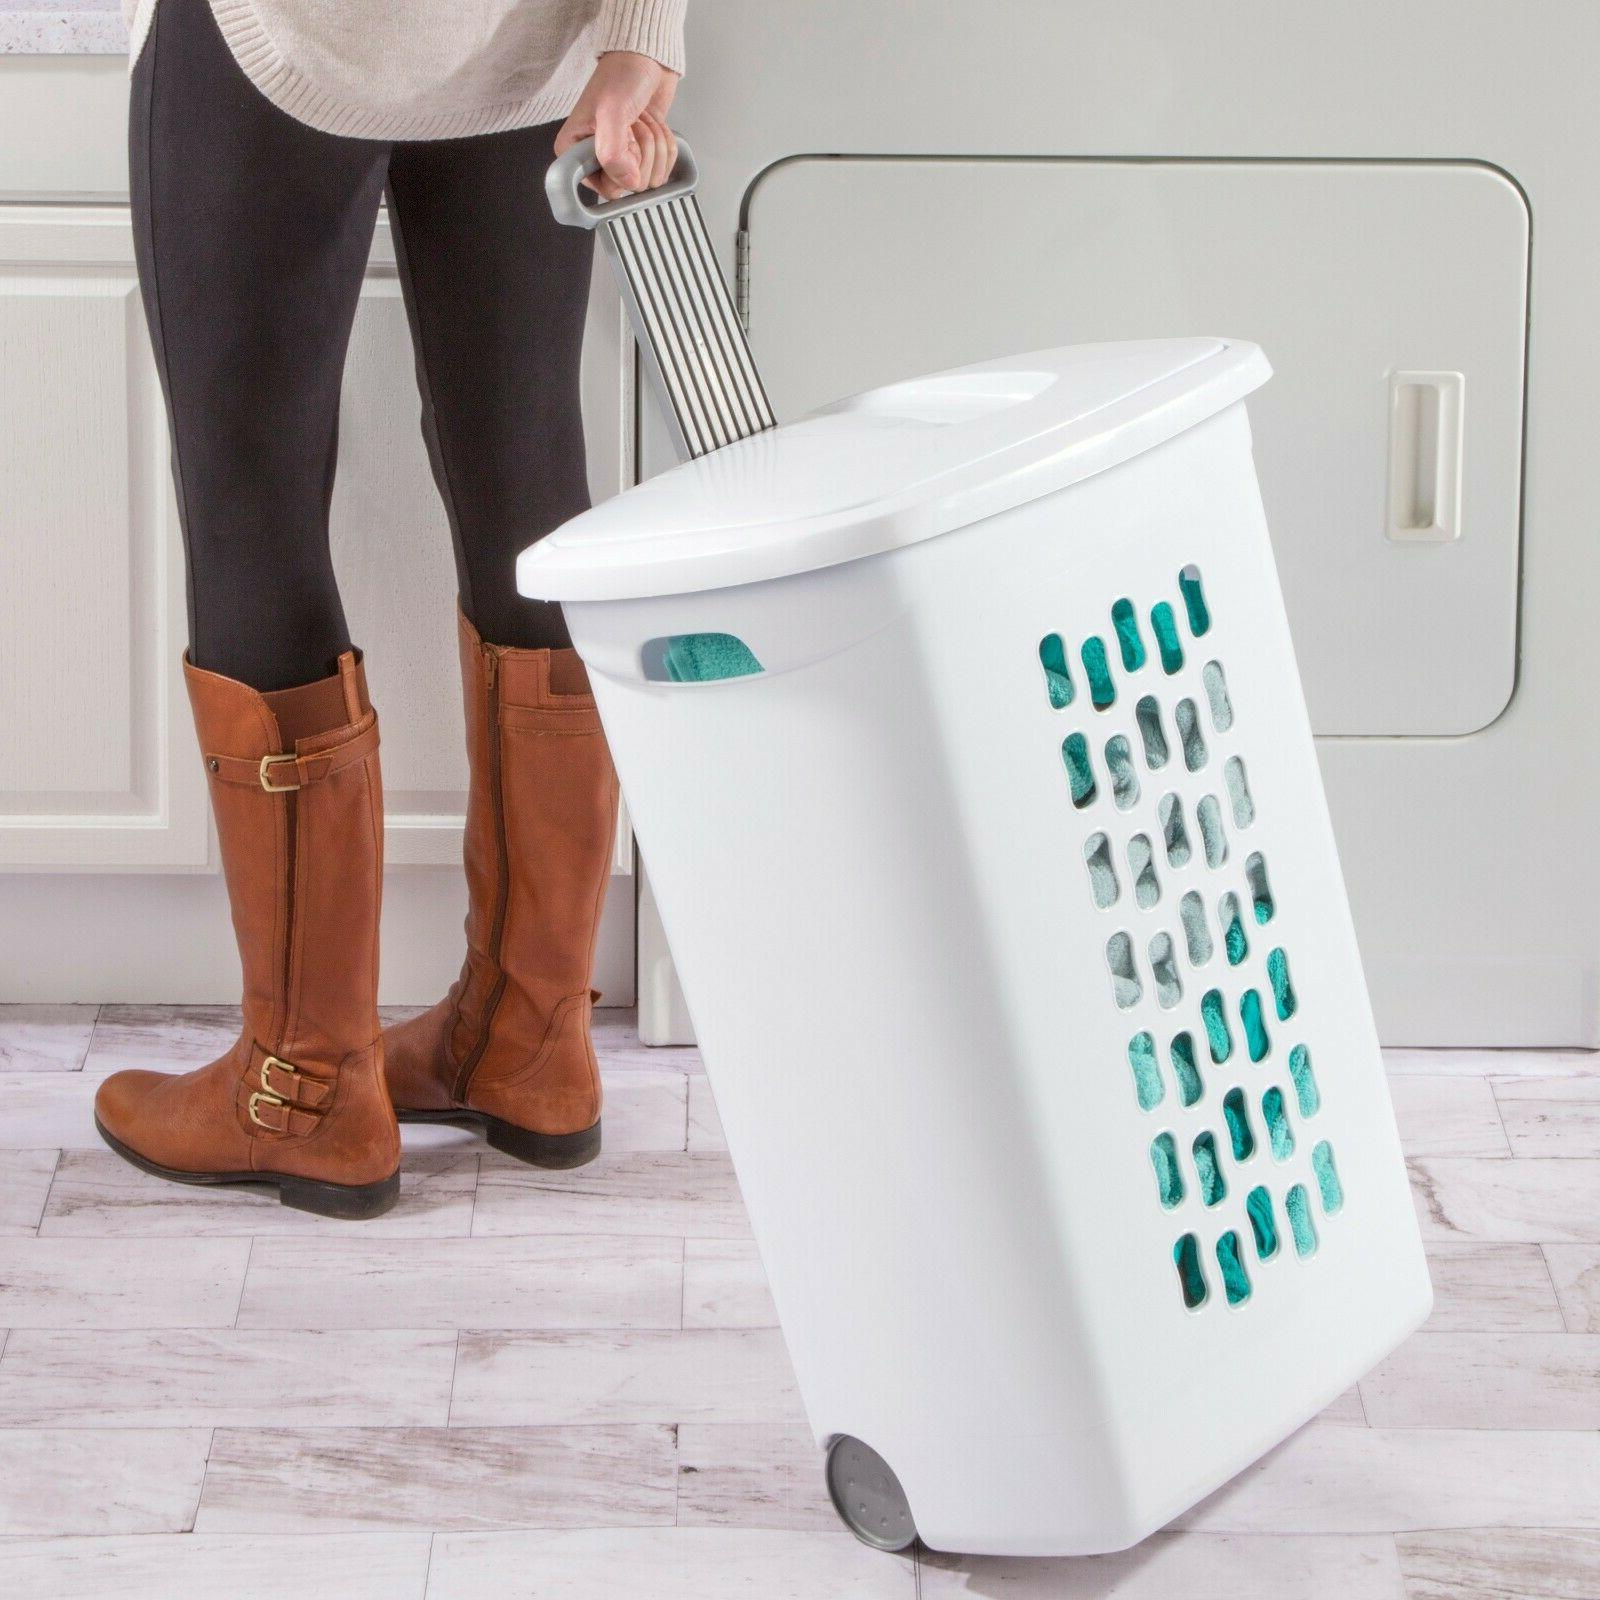 3 Wheeled Laundry Hamper Rolling Clothes Lid White